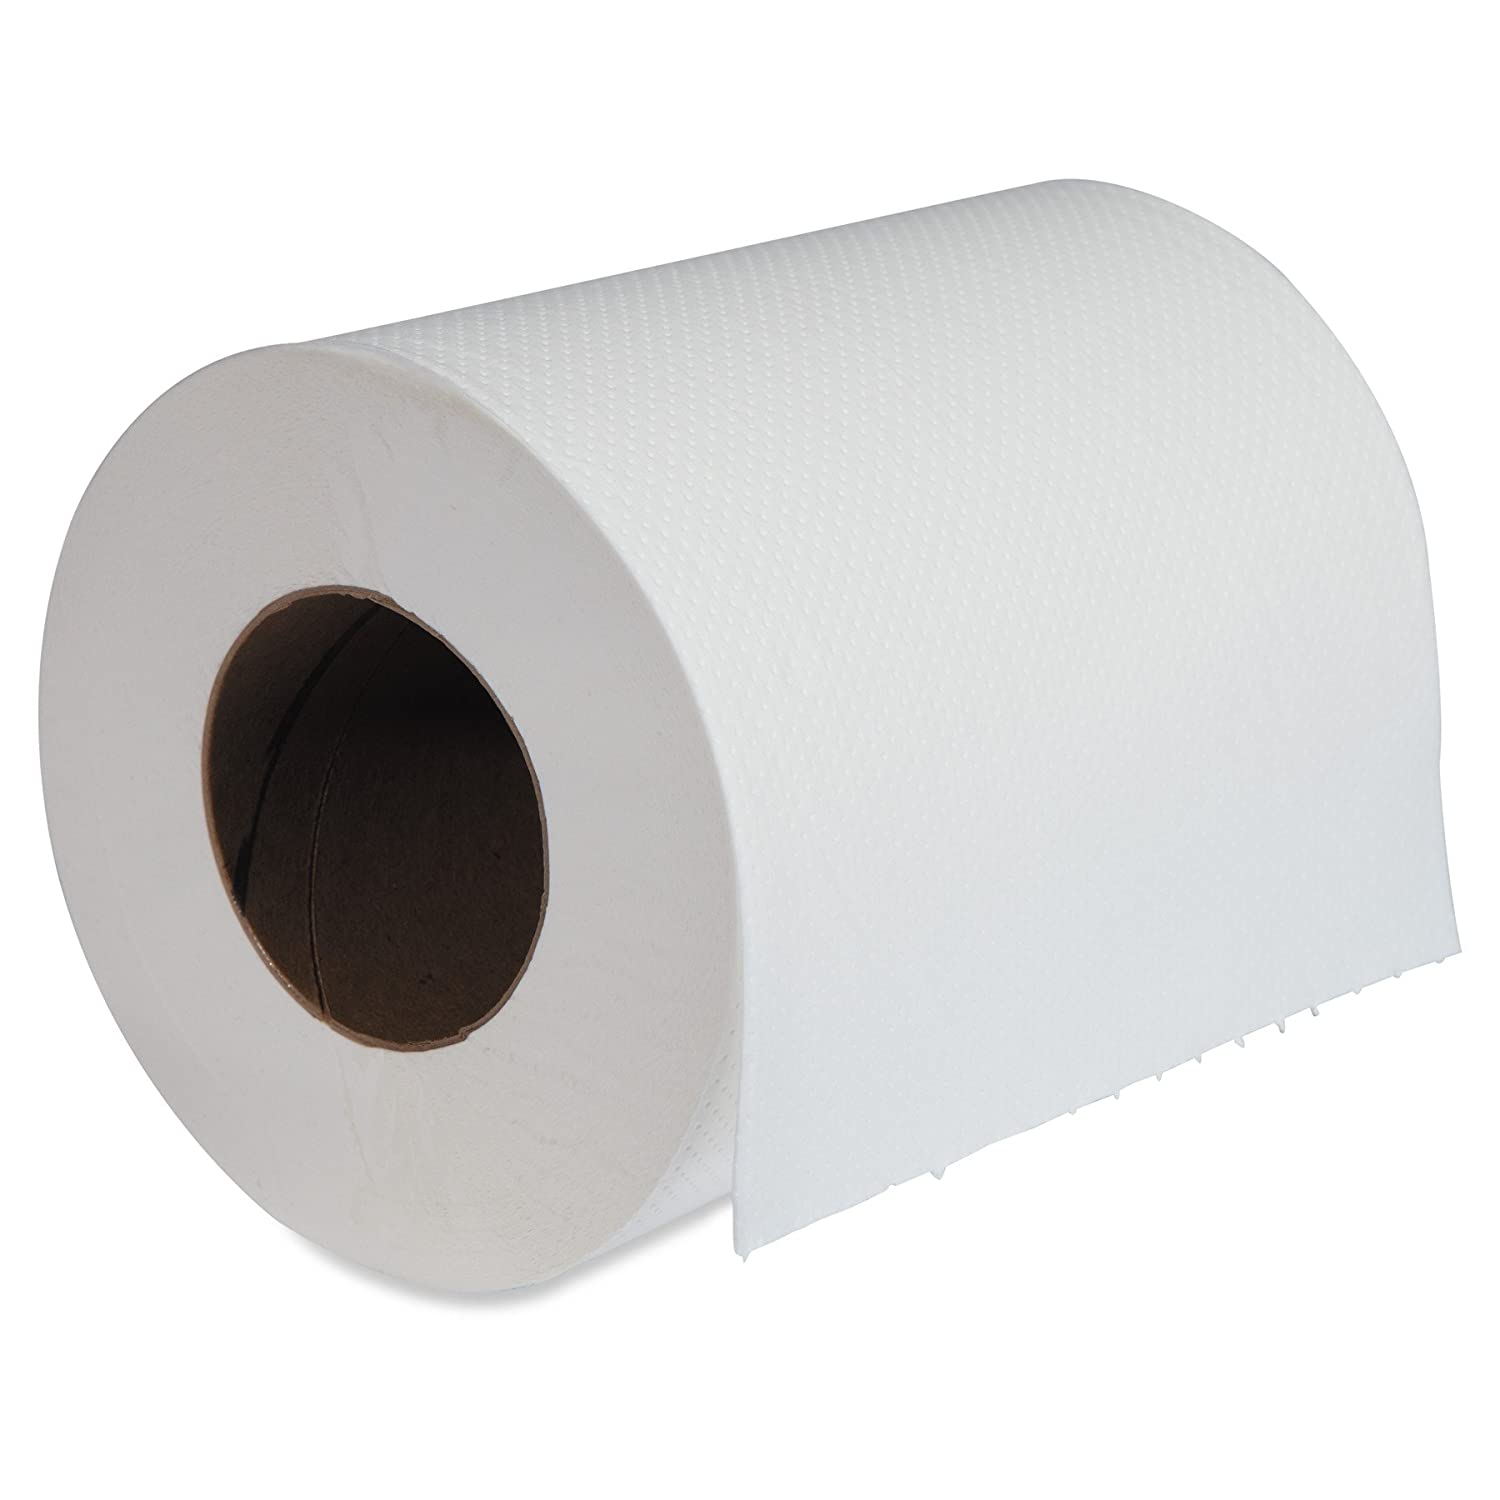 360 Sheets Per Roll 2-Ply Boardwalk 6405 Center-Pull Hand Towels Perforated 7 7//8 x 10 Case of 6 Rolls